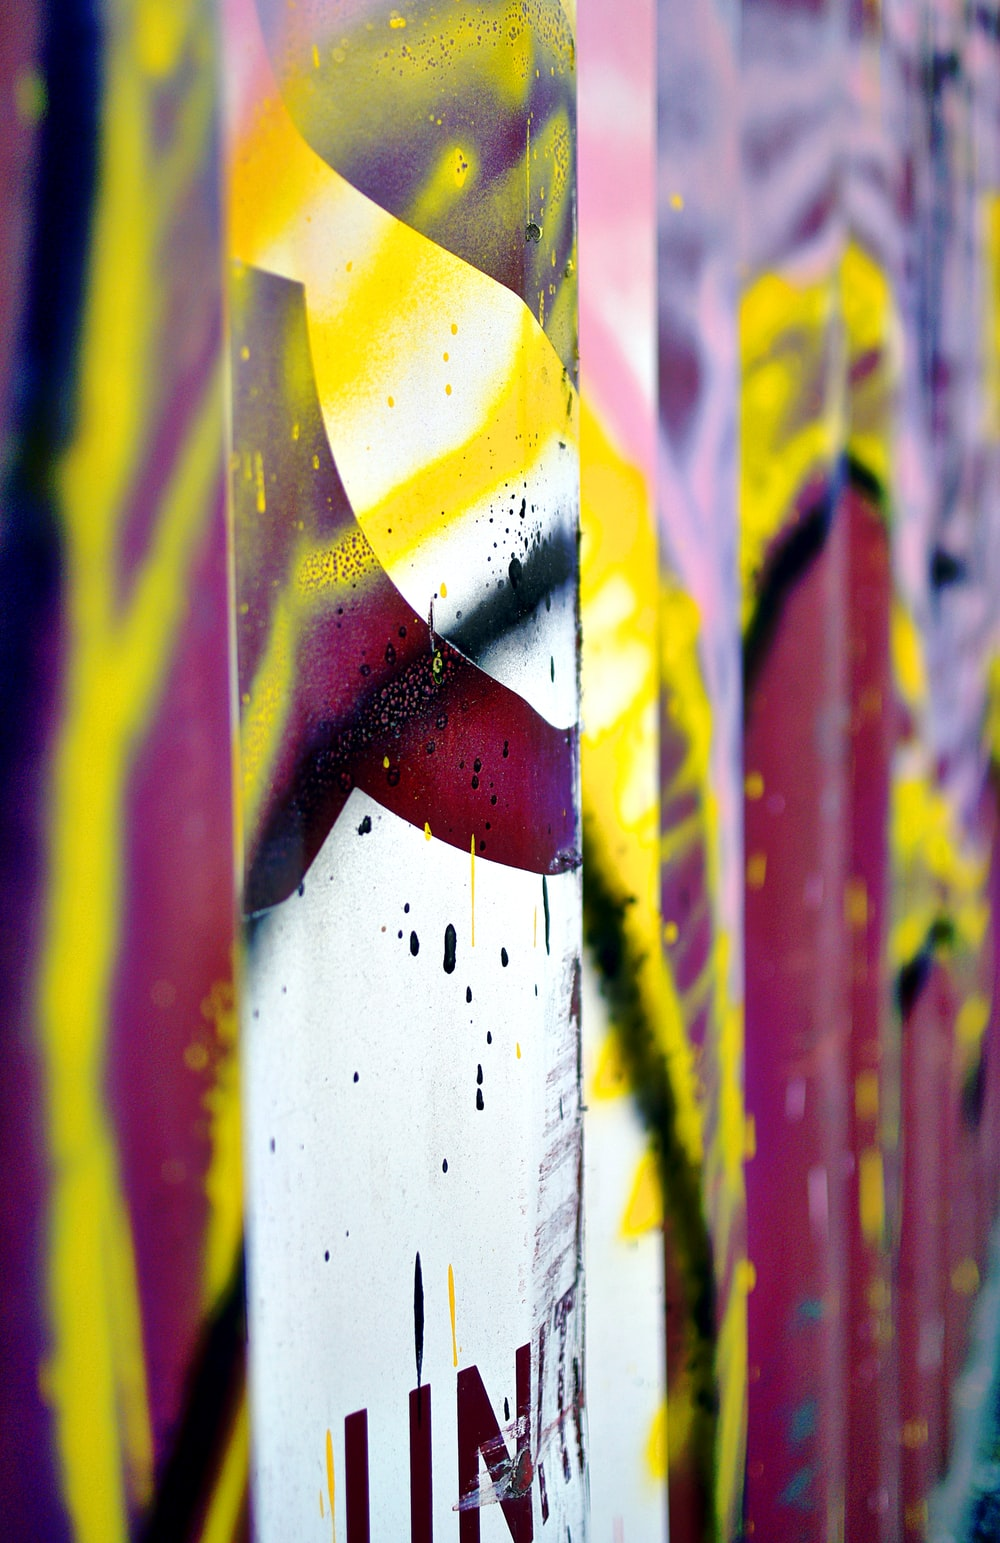 Paint Graffiti Pictures | Download Free Images on Unsplash